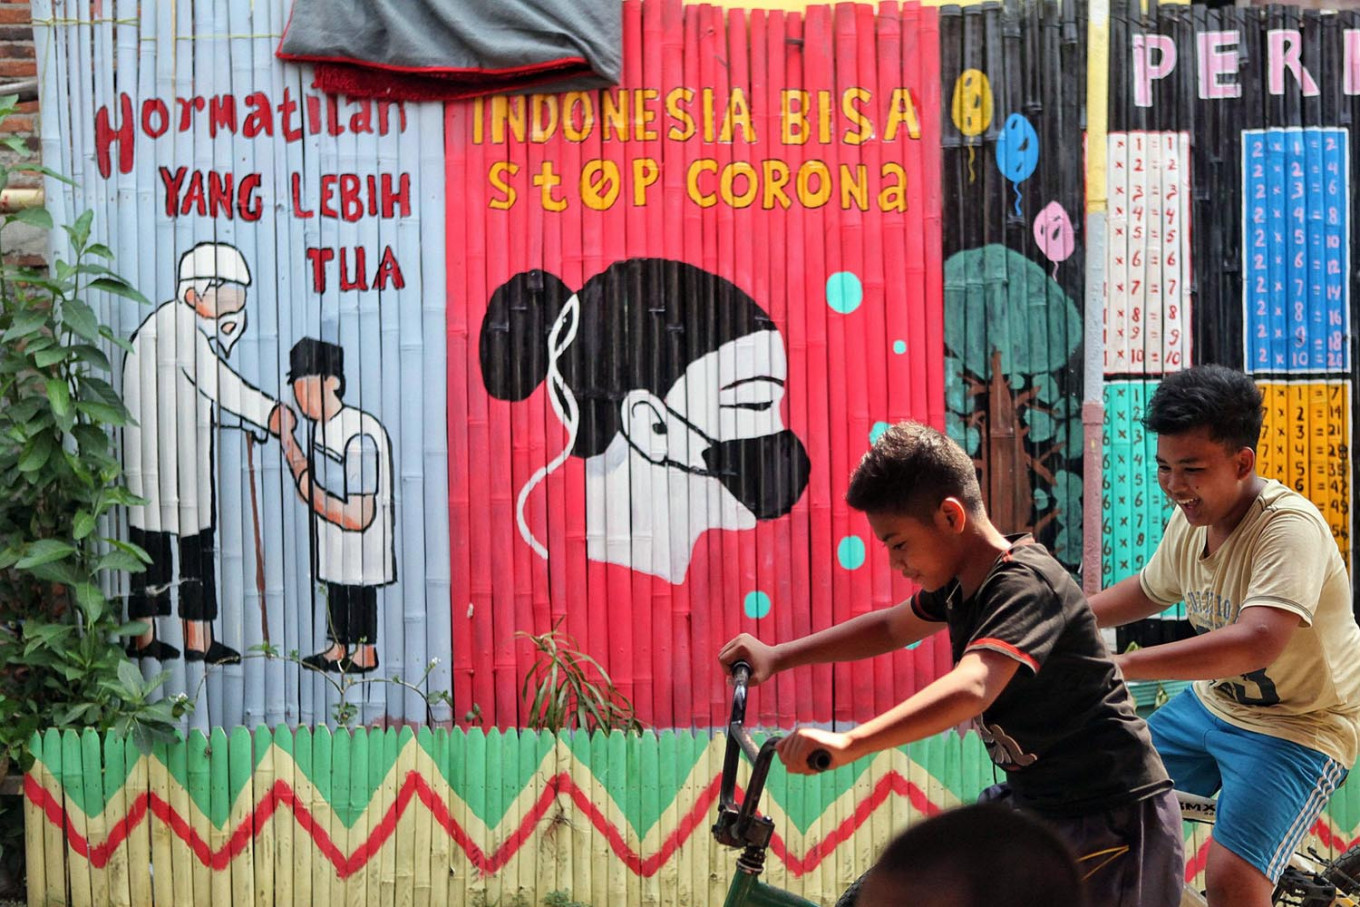 Children play near a coronavirus-themed mural at a playground in Kalipasir, Jakarta, on July 28.  Indonesia has recorded the highest number of coronavirus cases in Southeast Asia with 111,455 cases as of Sunday. JP/Seto Wardhana